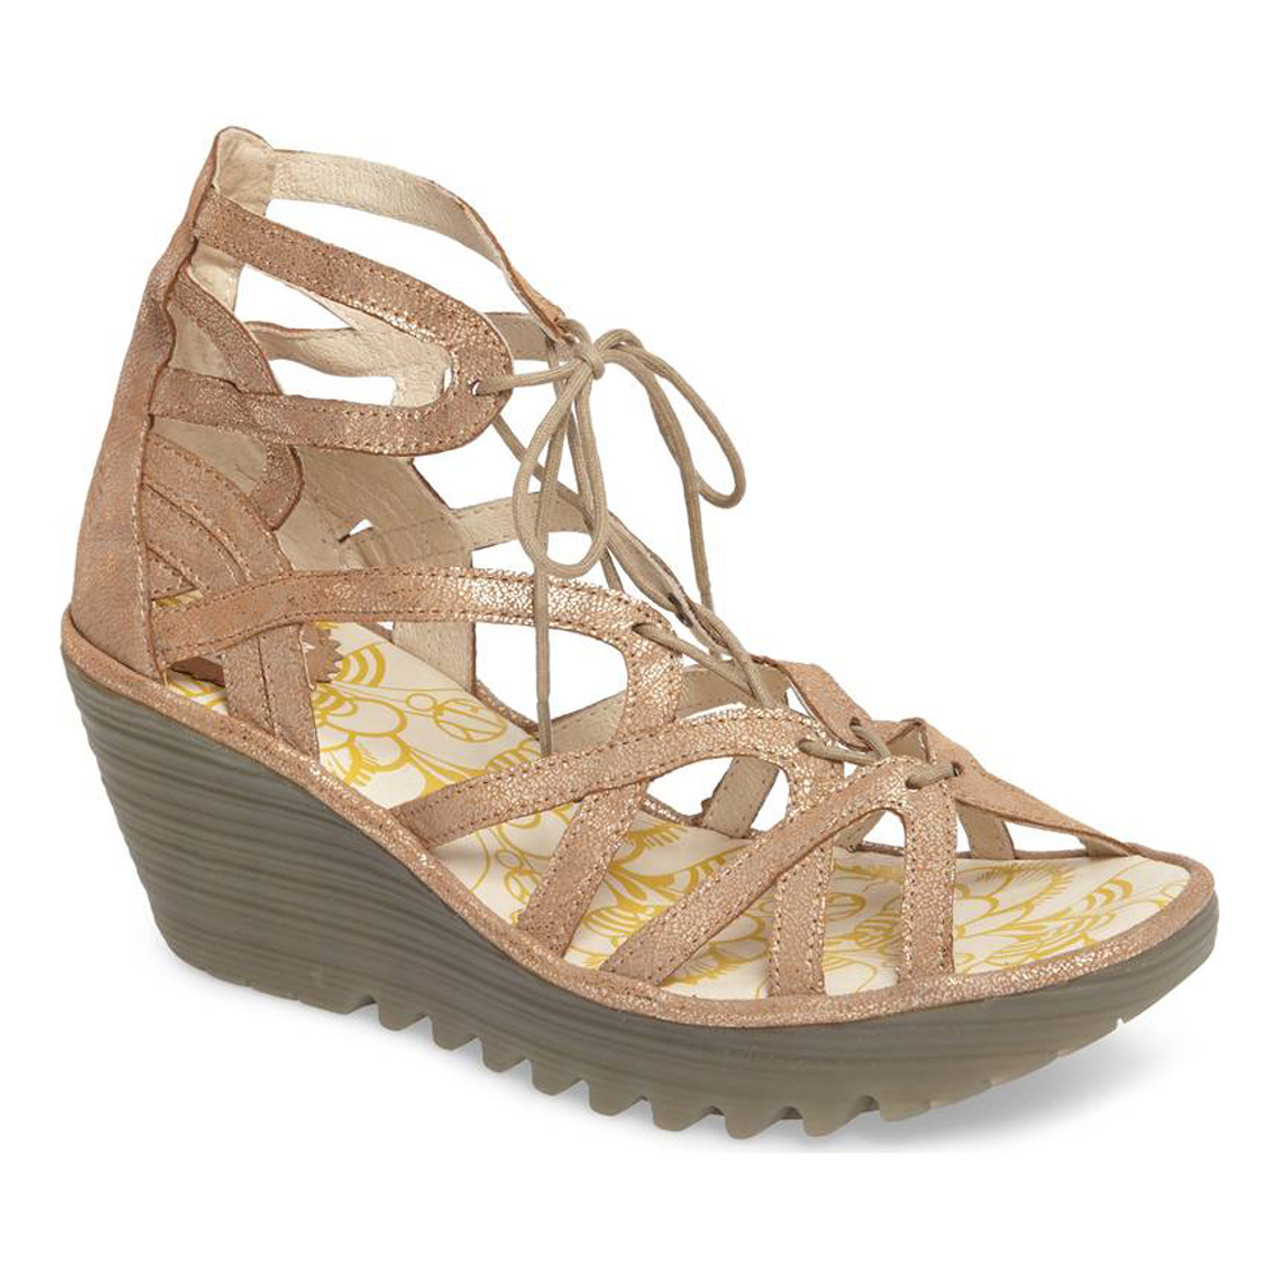 5e268e27c3 Fly London Women s Yuke Wedge Sandal Luna - Shop now   Shoolu.com